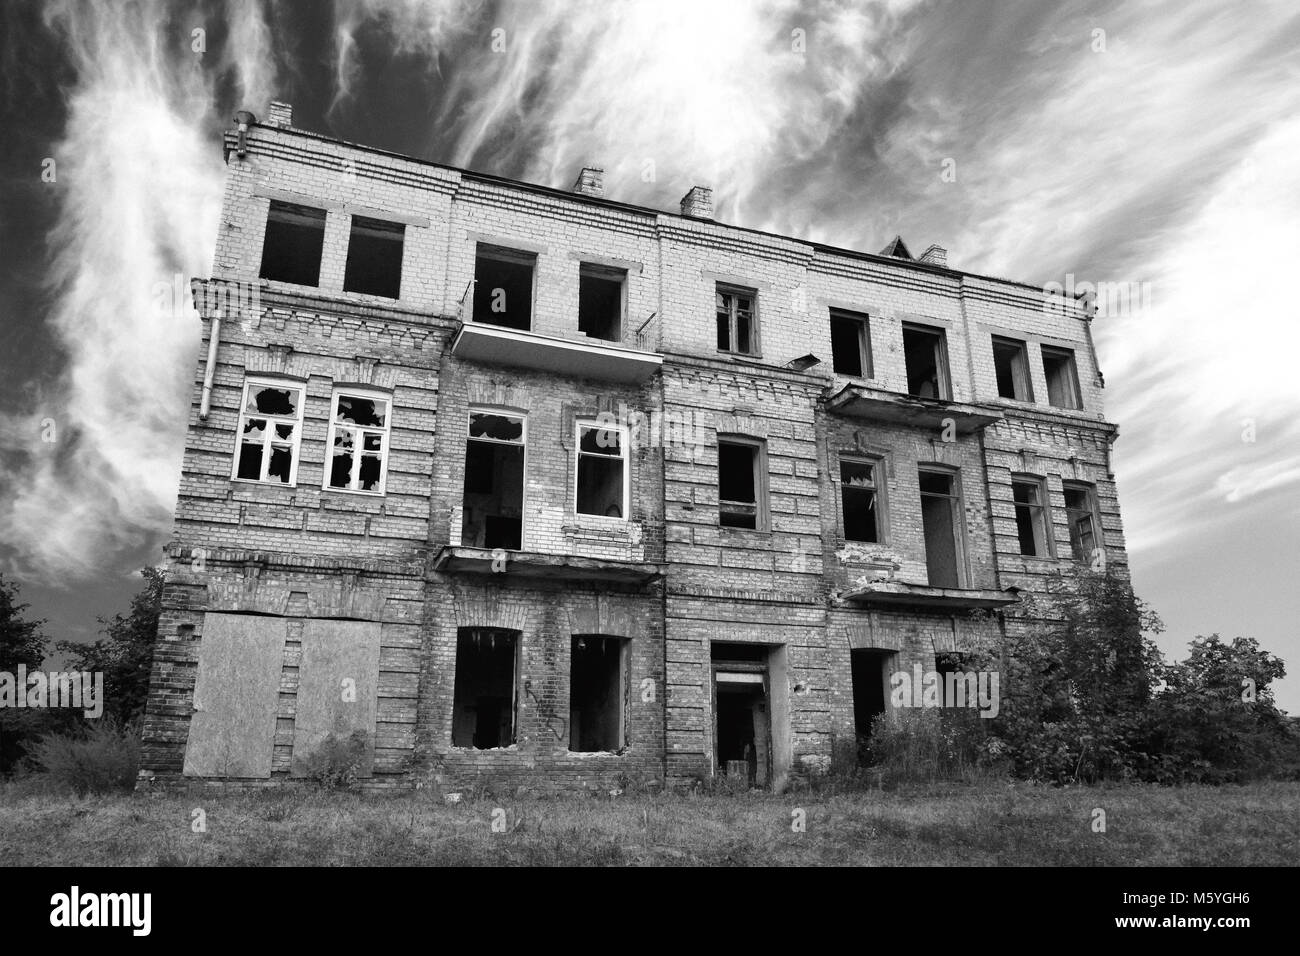 Old abandoned ruined house exterior against dramatic black and white cloudy sky - Stock Image